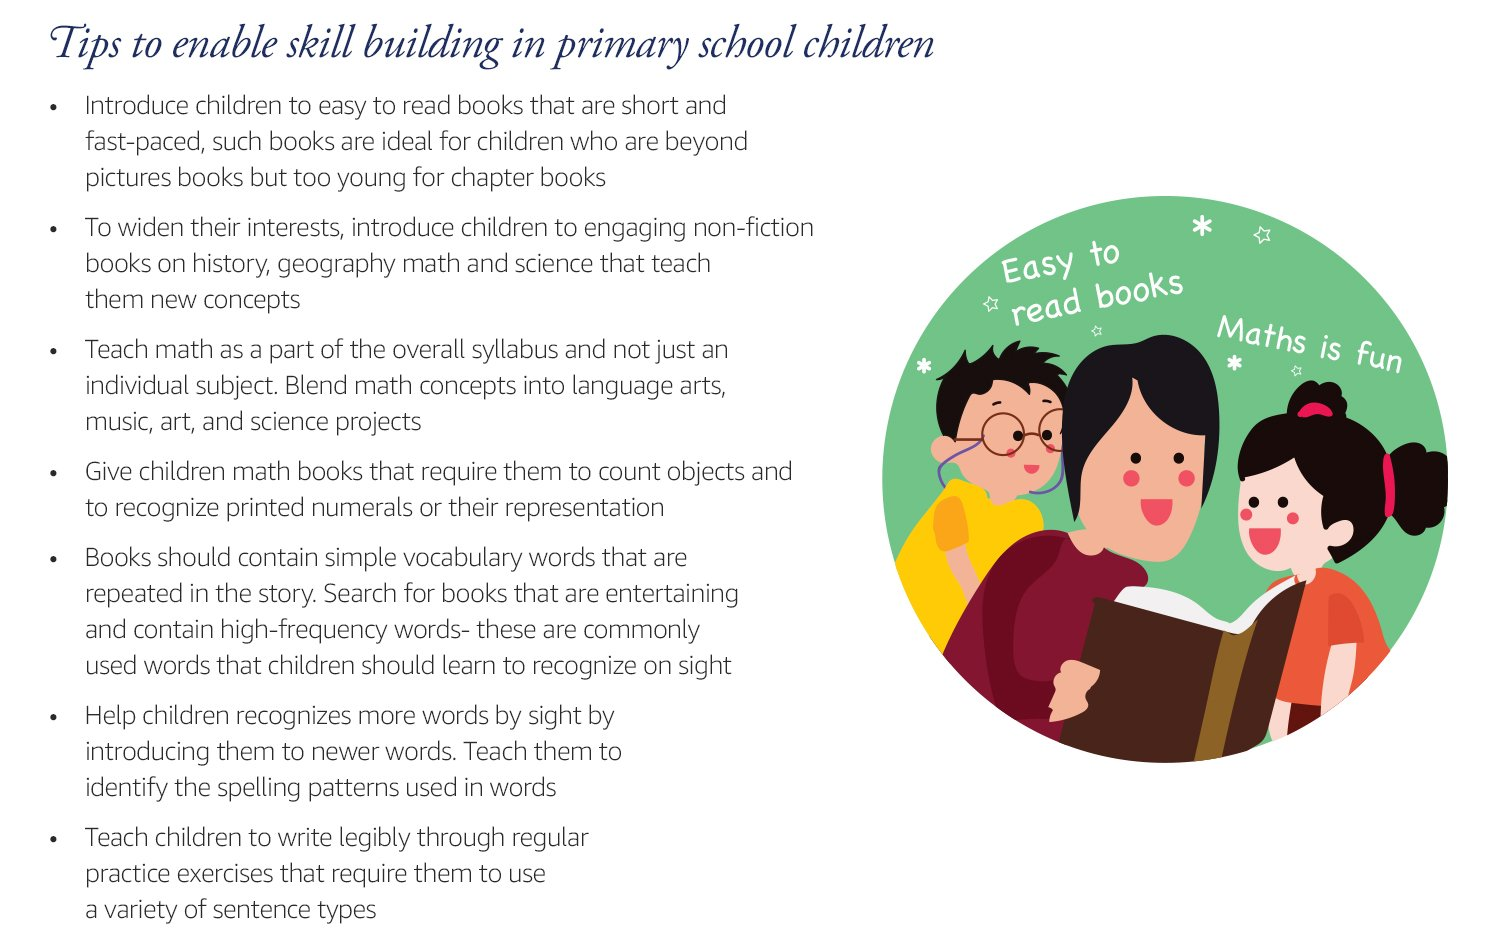 Tips to enable skill building in primary school children: